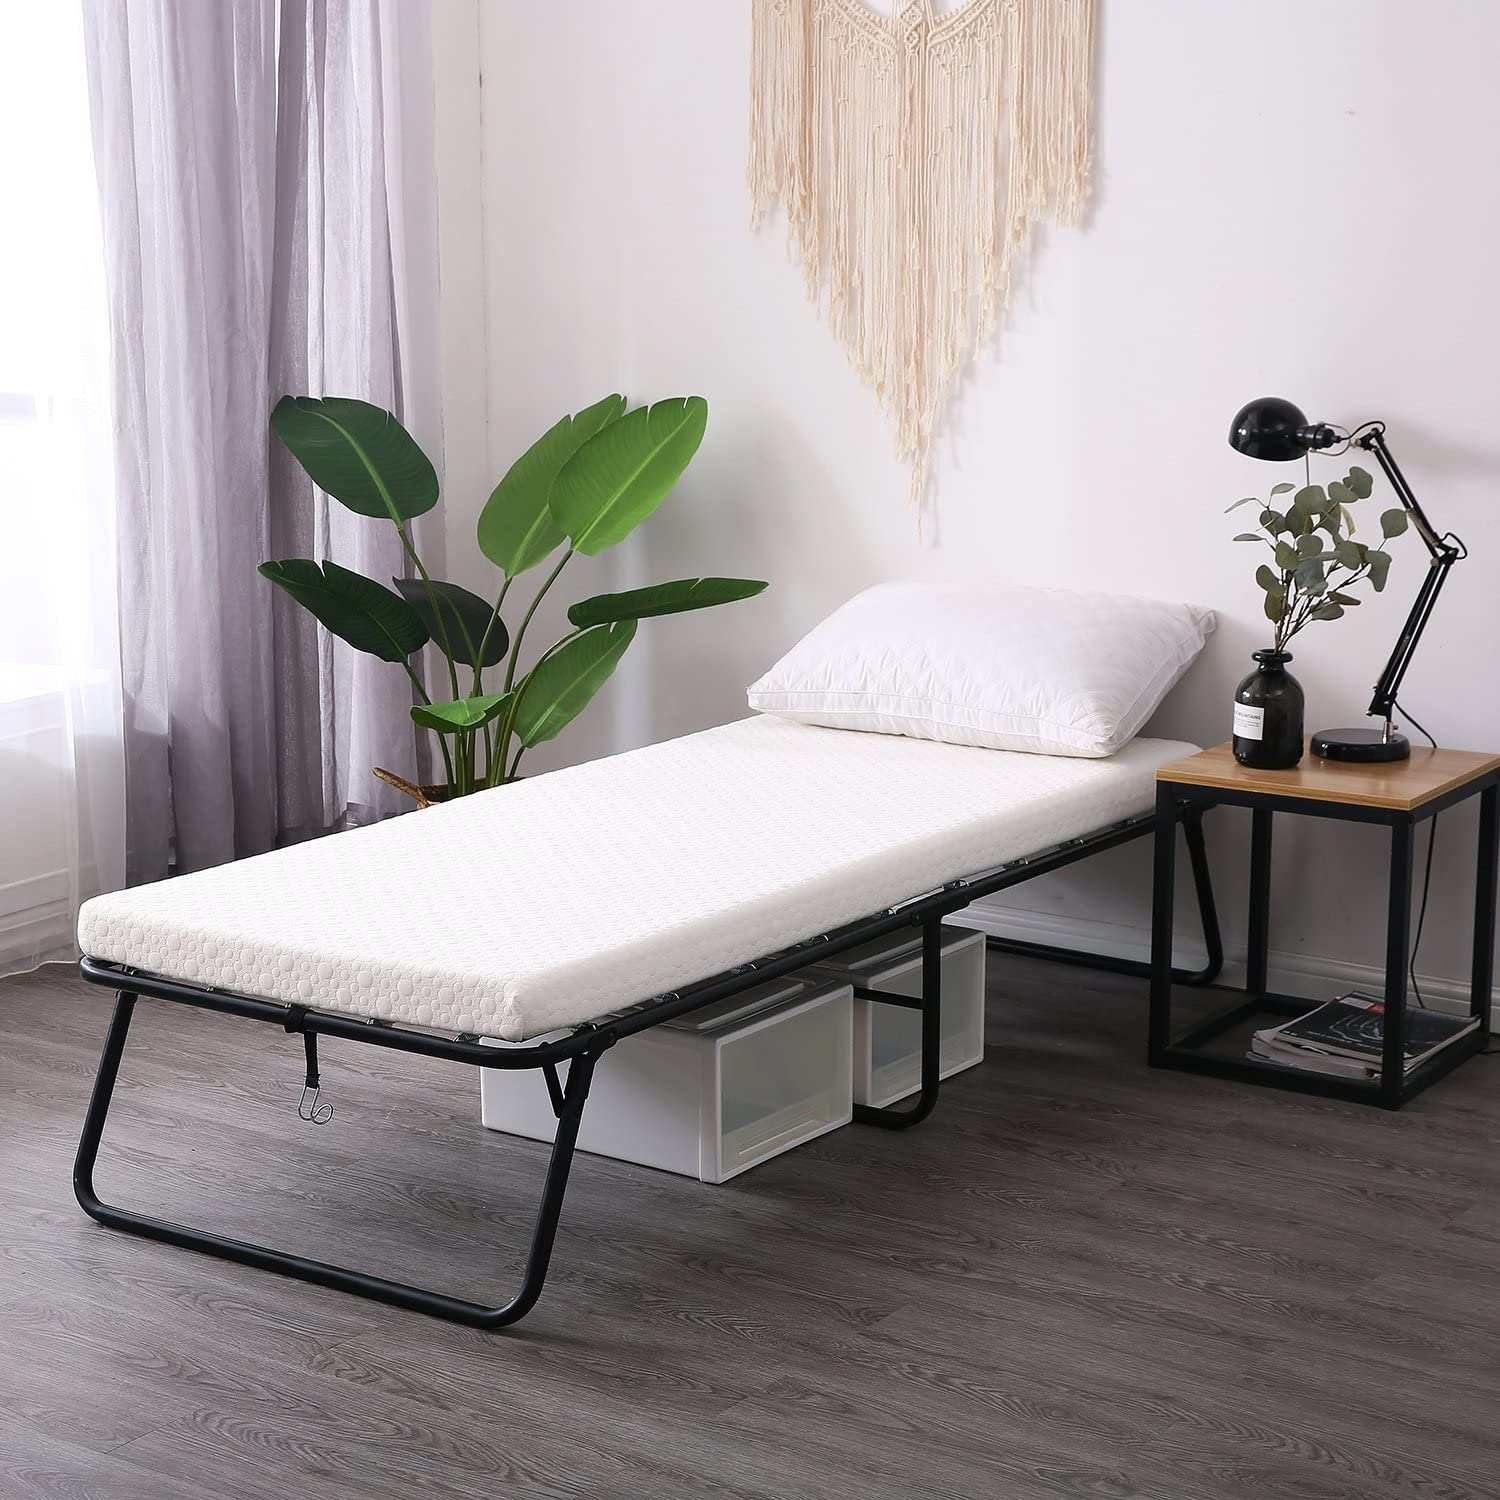 Leisuit Rollaway Guest Portable Bed